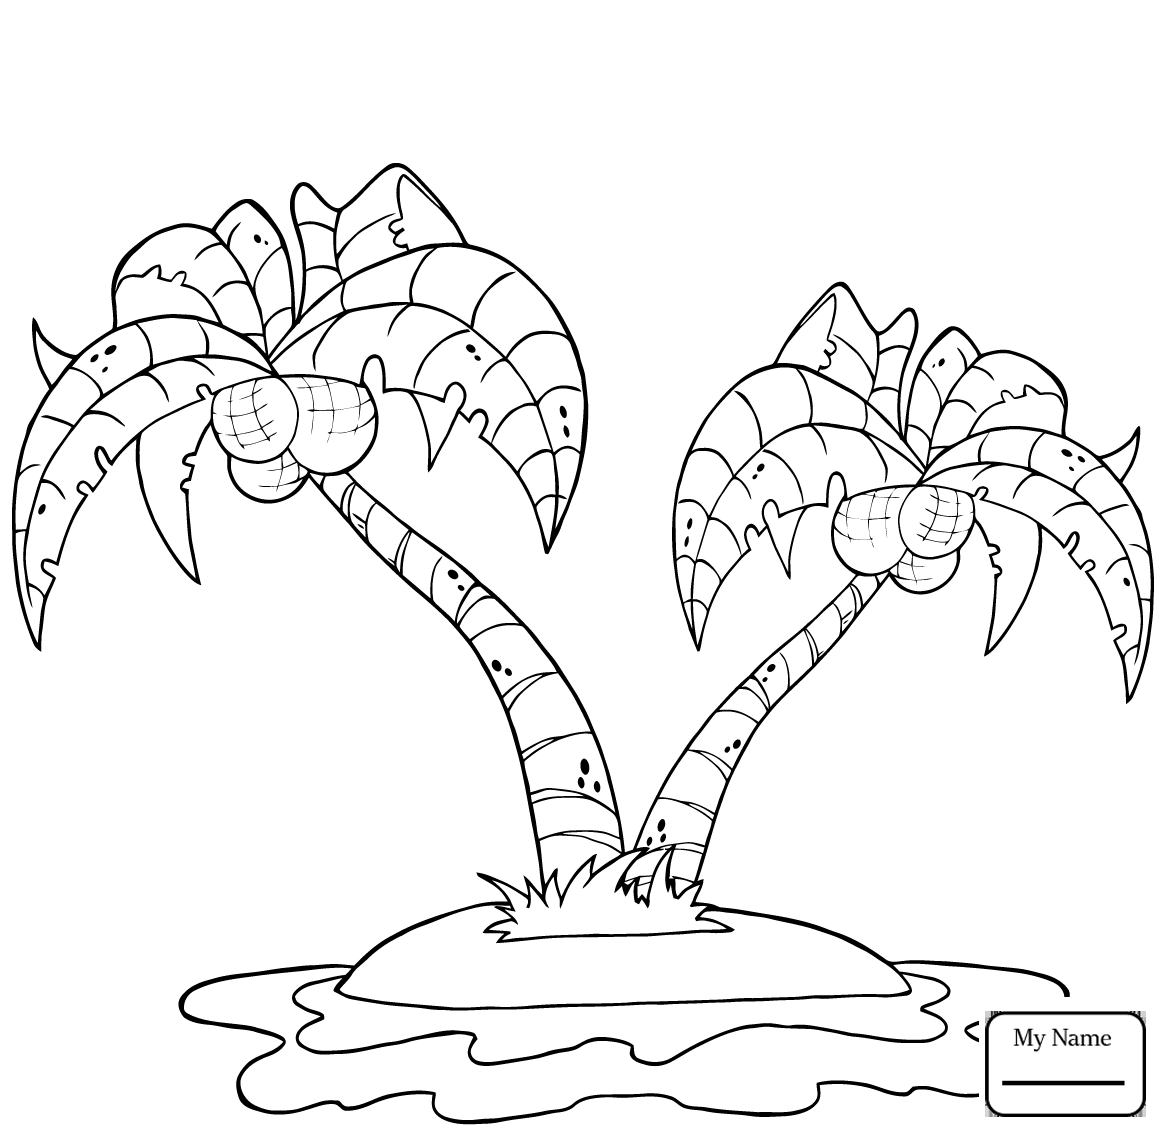 1165x1136 Coloring Pages Beach Nature Seasons Family Beach Picnic